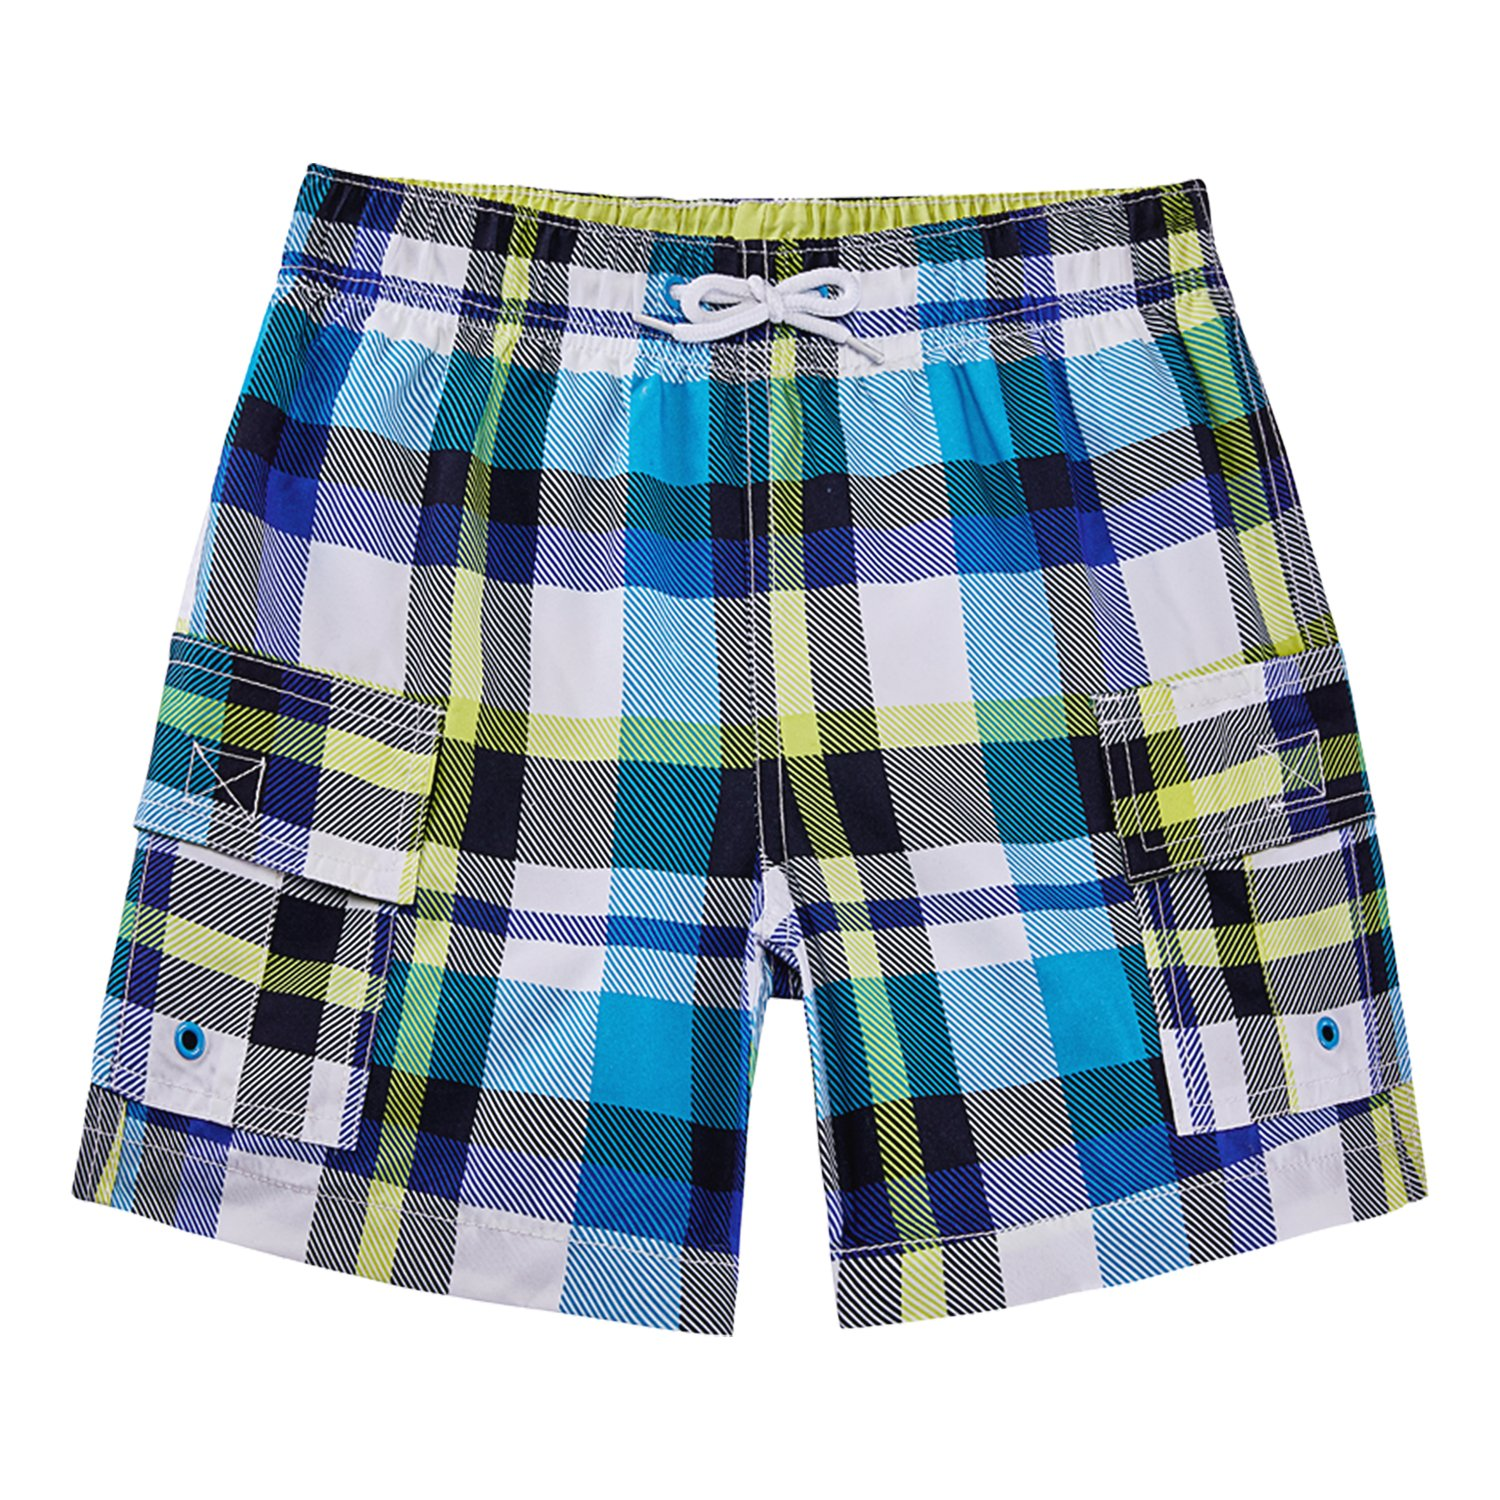 JezMax Baby Toddler Boys Swim Trunk Board Shorts with Pockets AM005PL